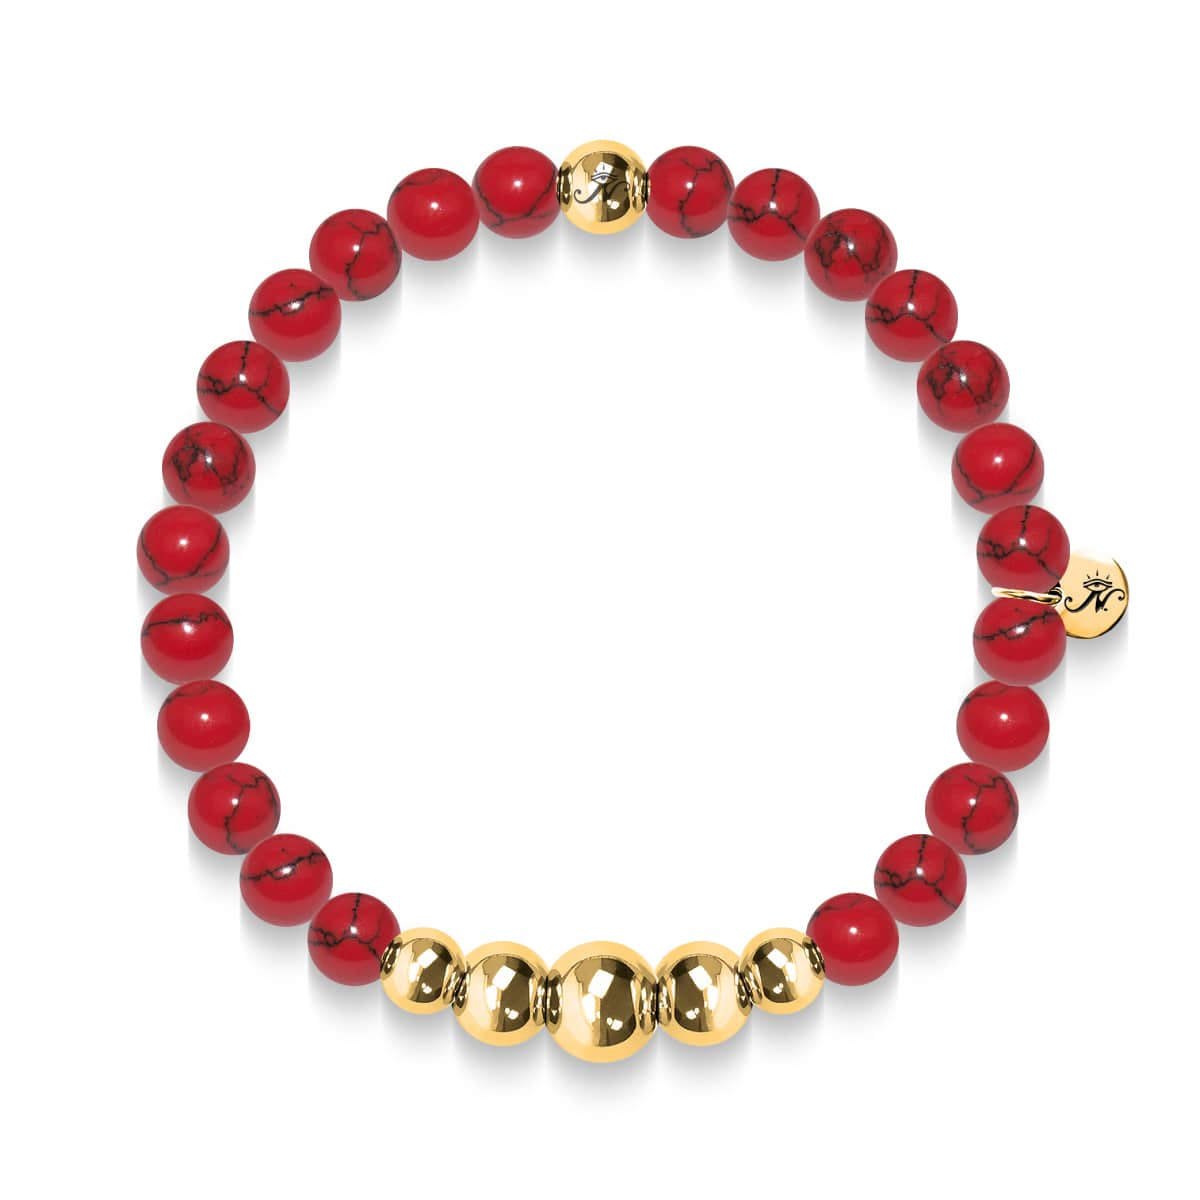 Tranquility | Gold Aura Red Turquoise Bracelet